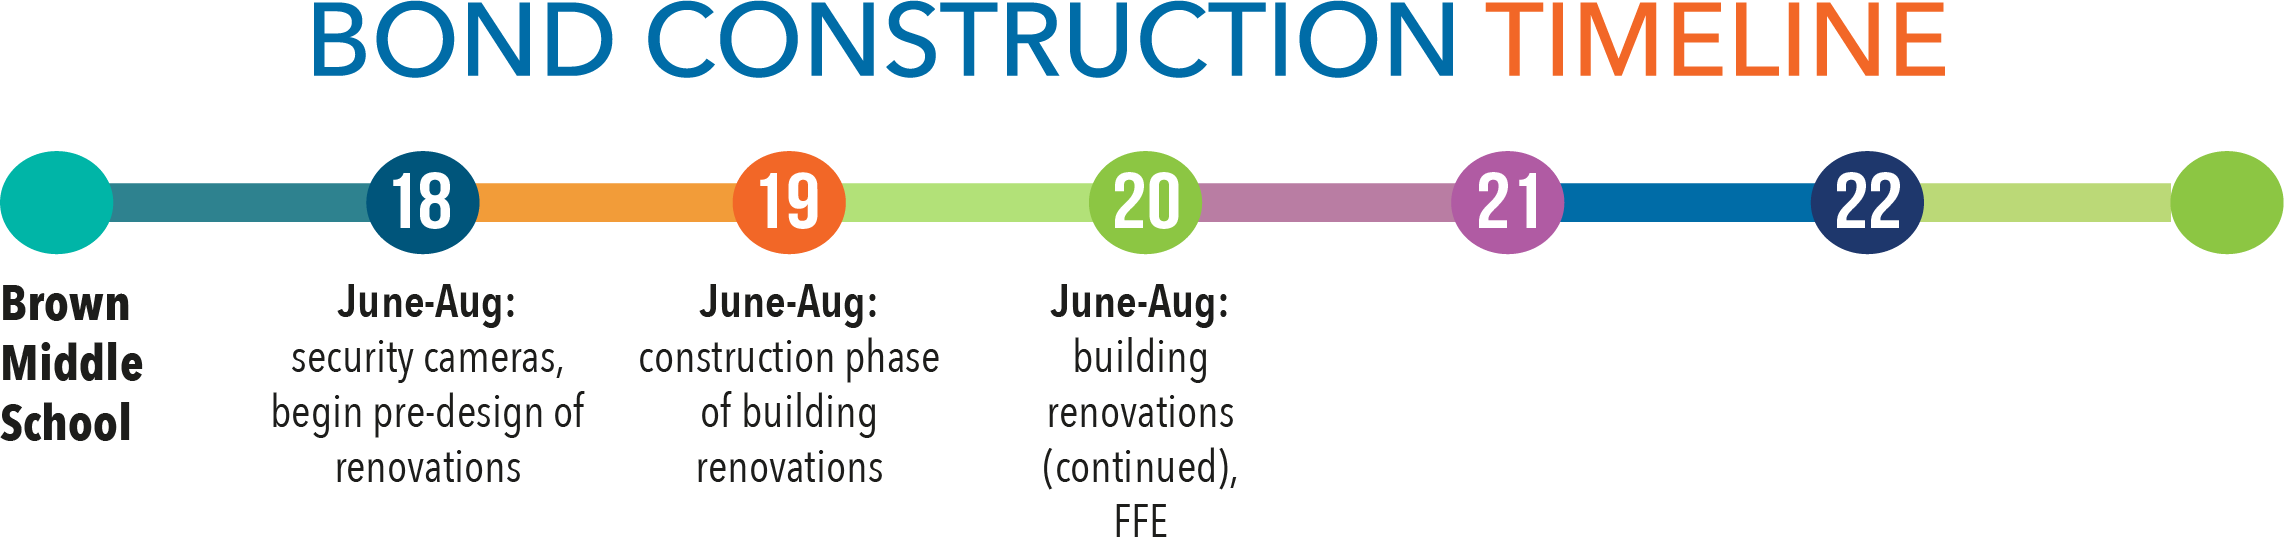 Construction timeline - Brown